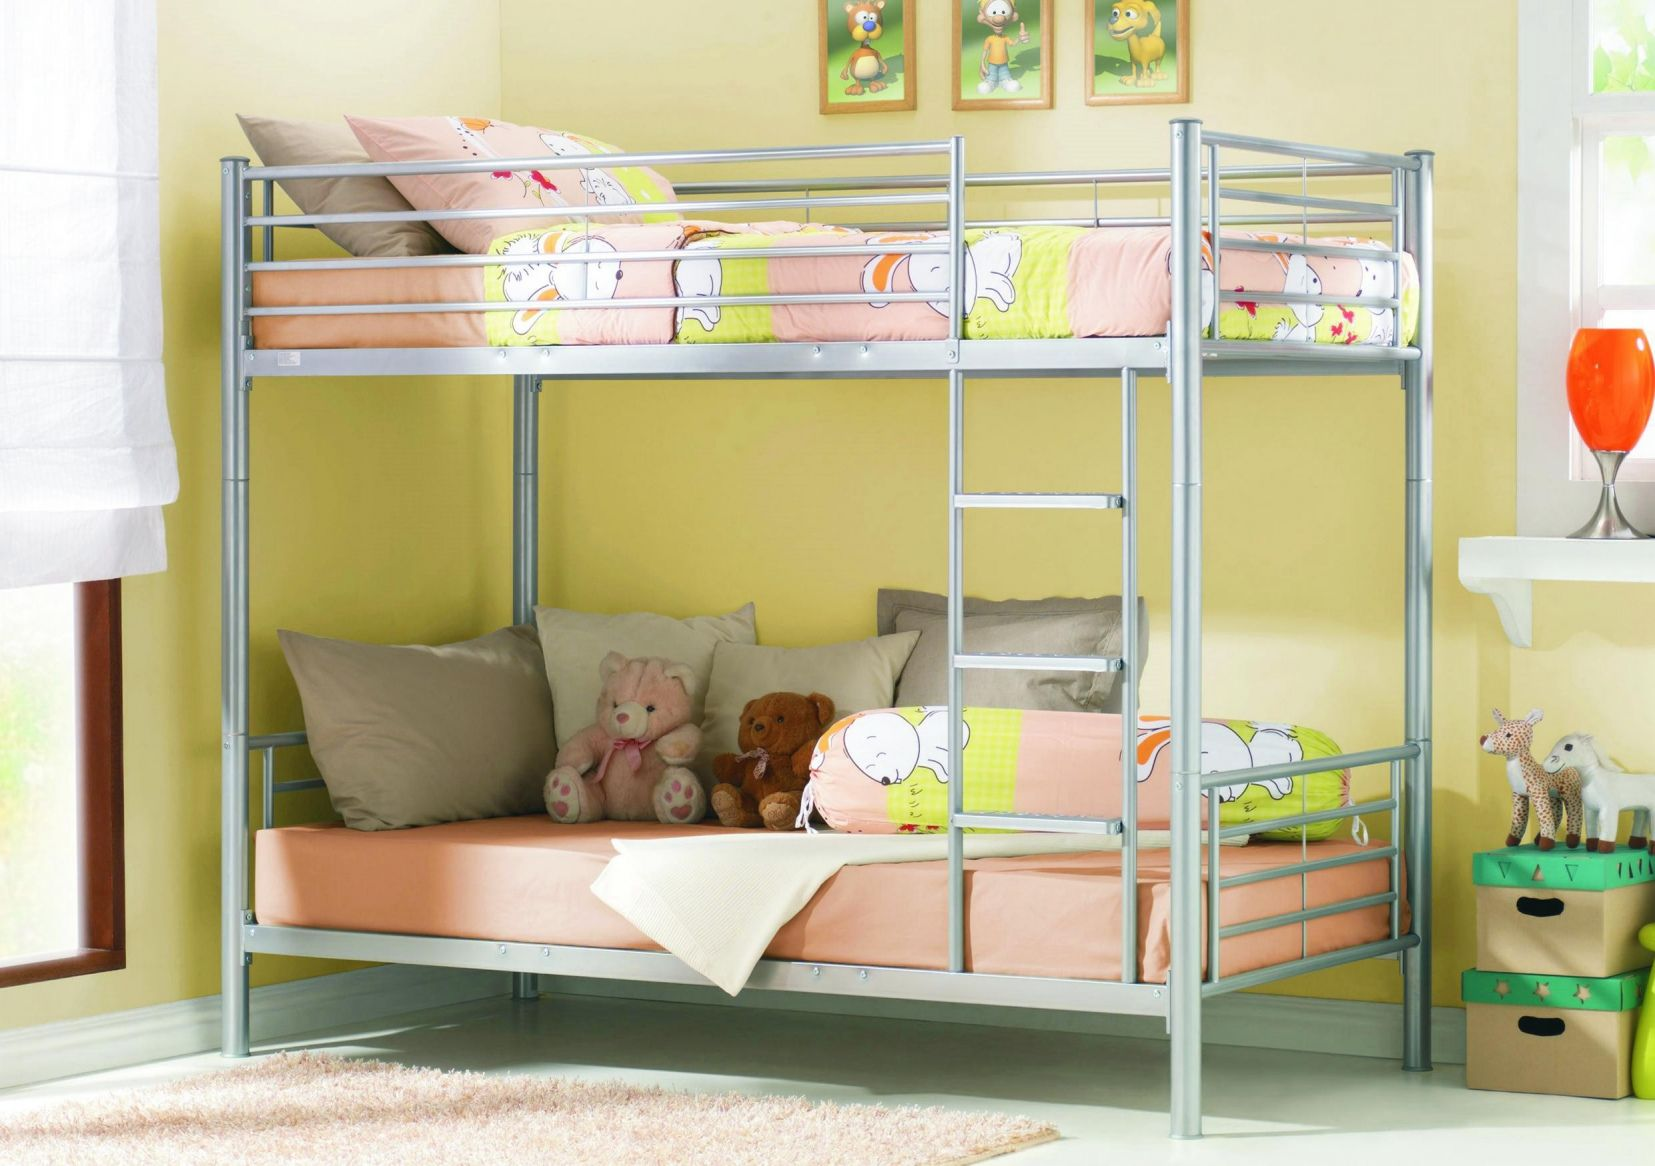 50+ Double Bed for toddler - Country Bedroom Decorating Ideas Check ...